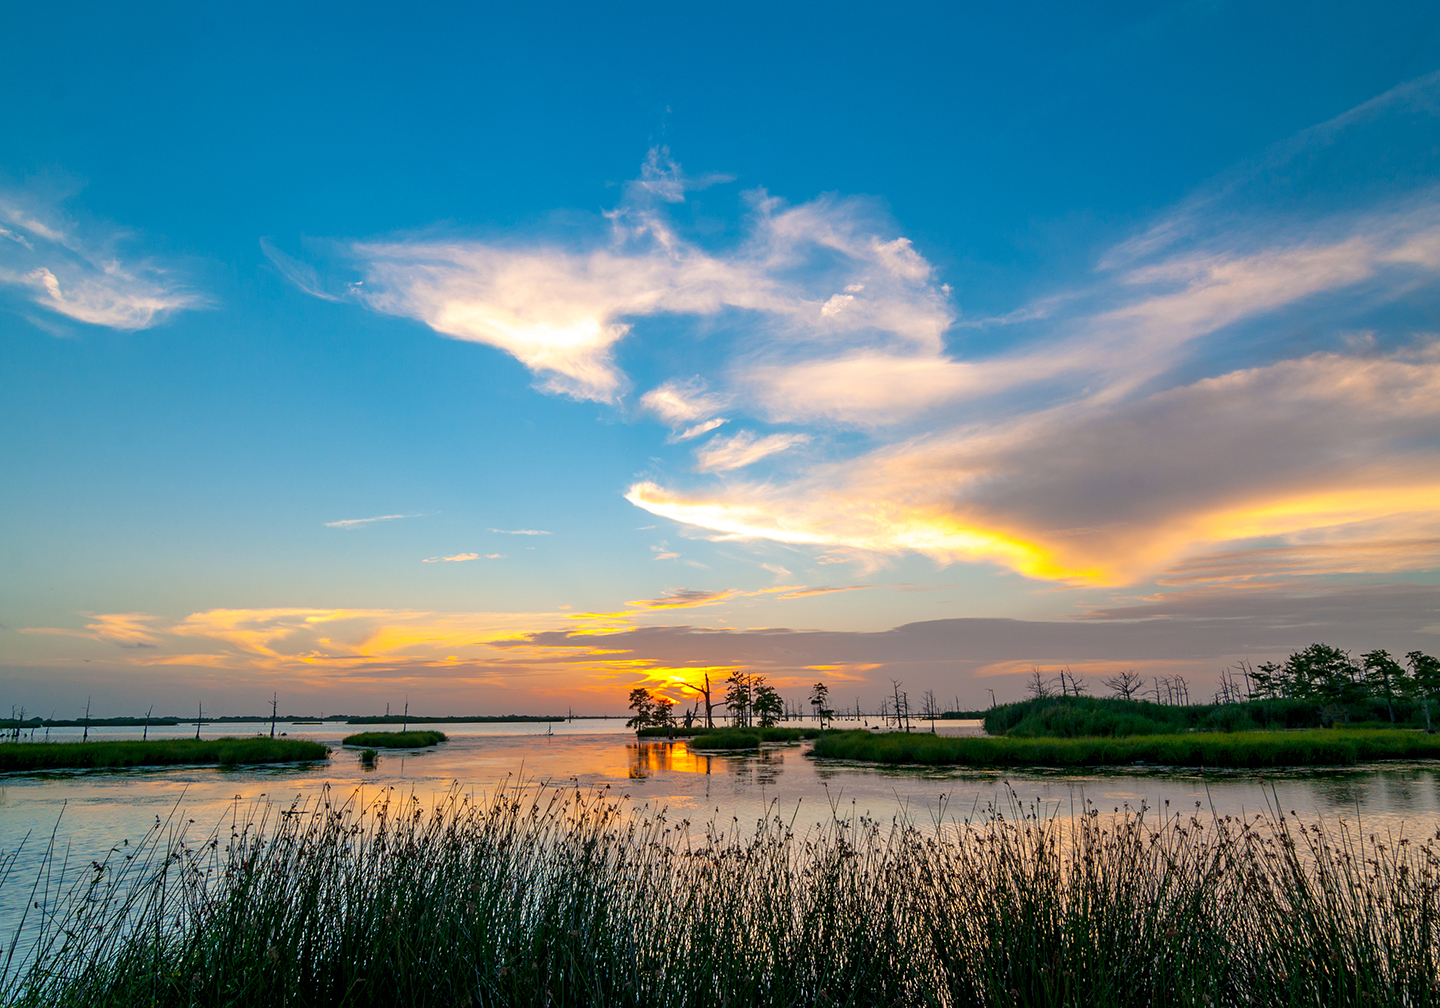 A view of the Louisiana wetlands at sunset, with grass in the foreground, water in the center, and sky in the distance.